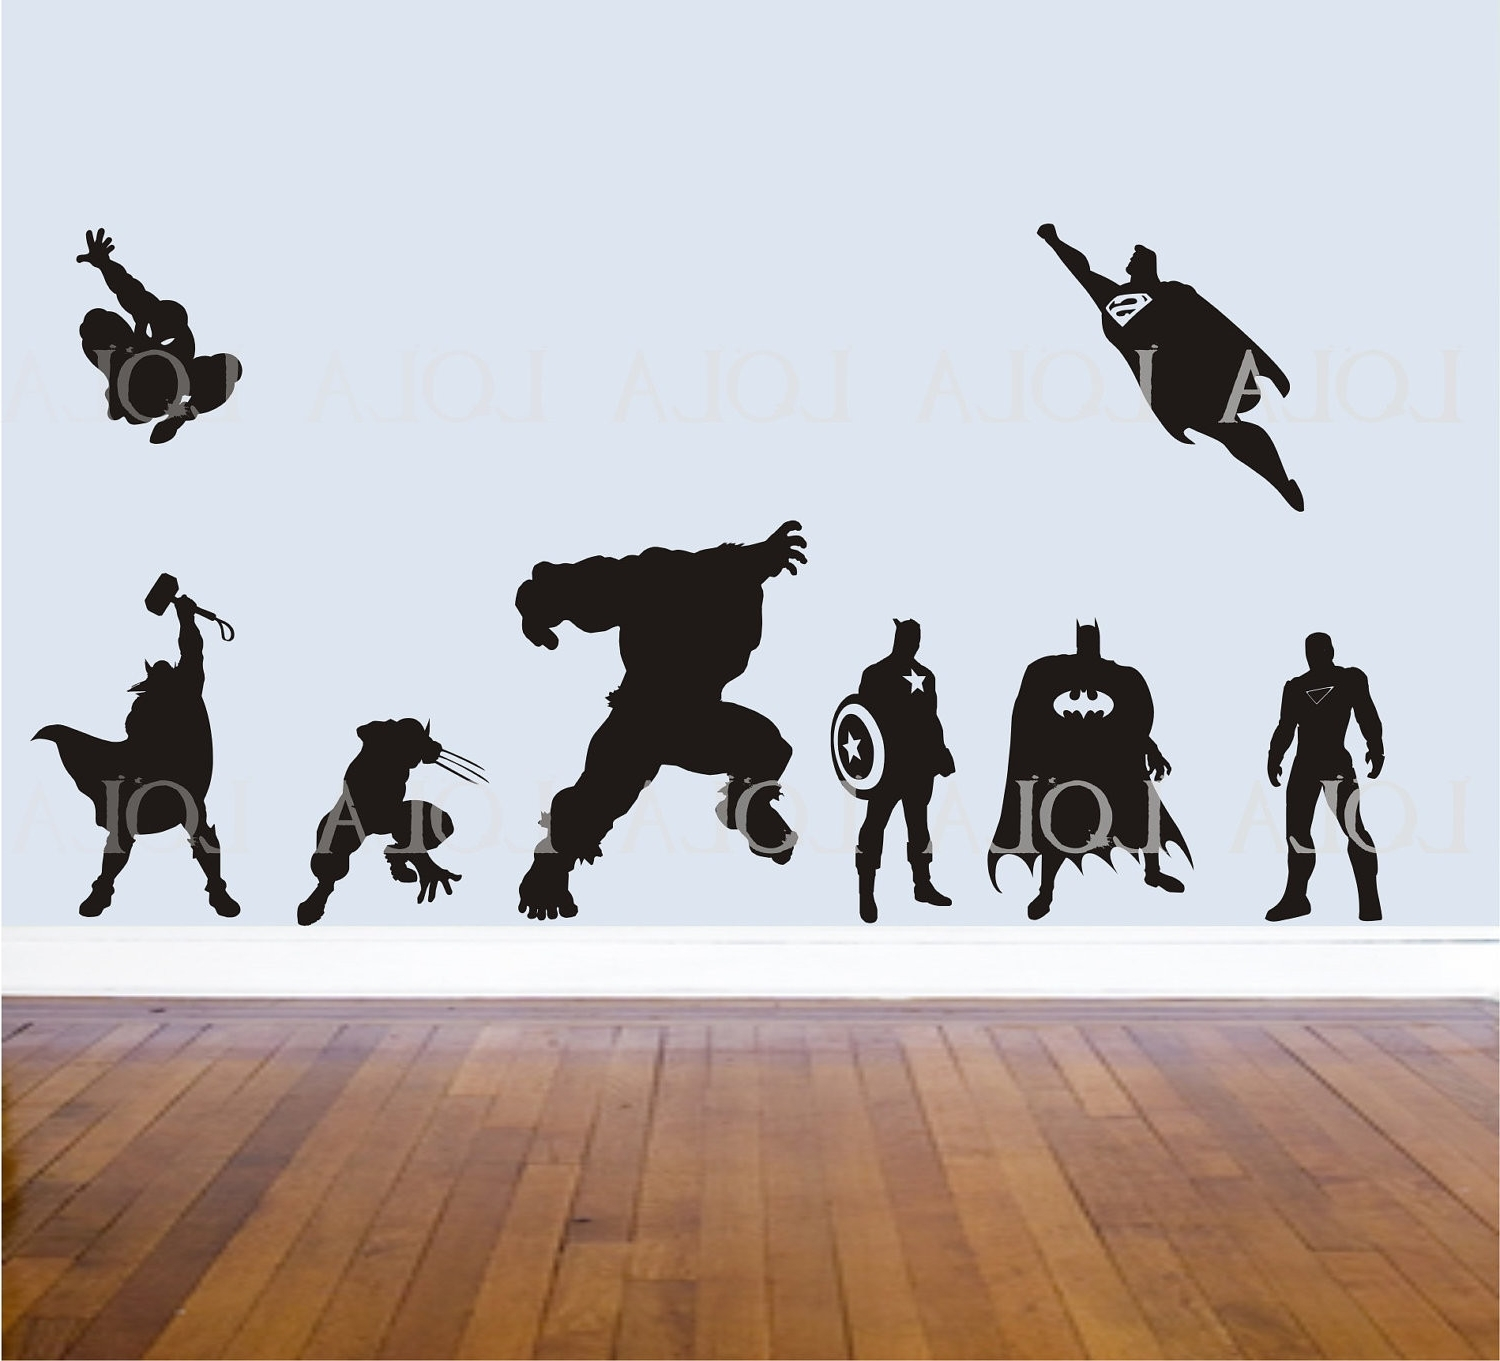 Well Known Superhero Wall Decor Talentneeds Scheme Of Superhero Wall Stickers Pertaining To Superhero Wall Art (View 14 of 15)